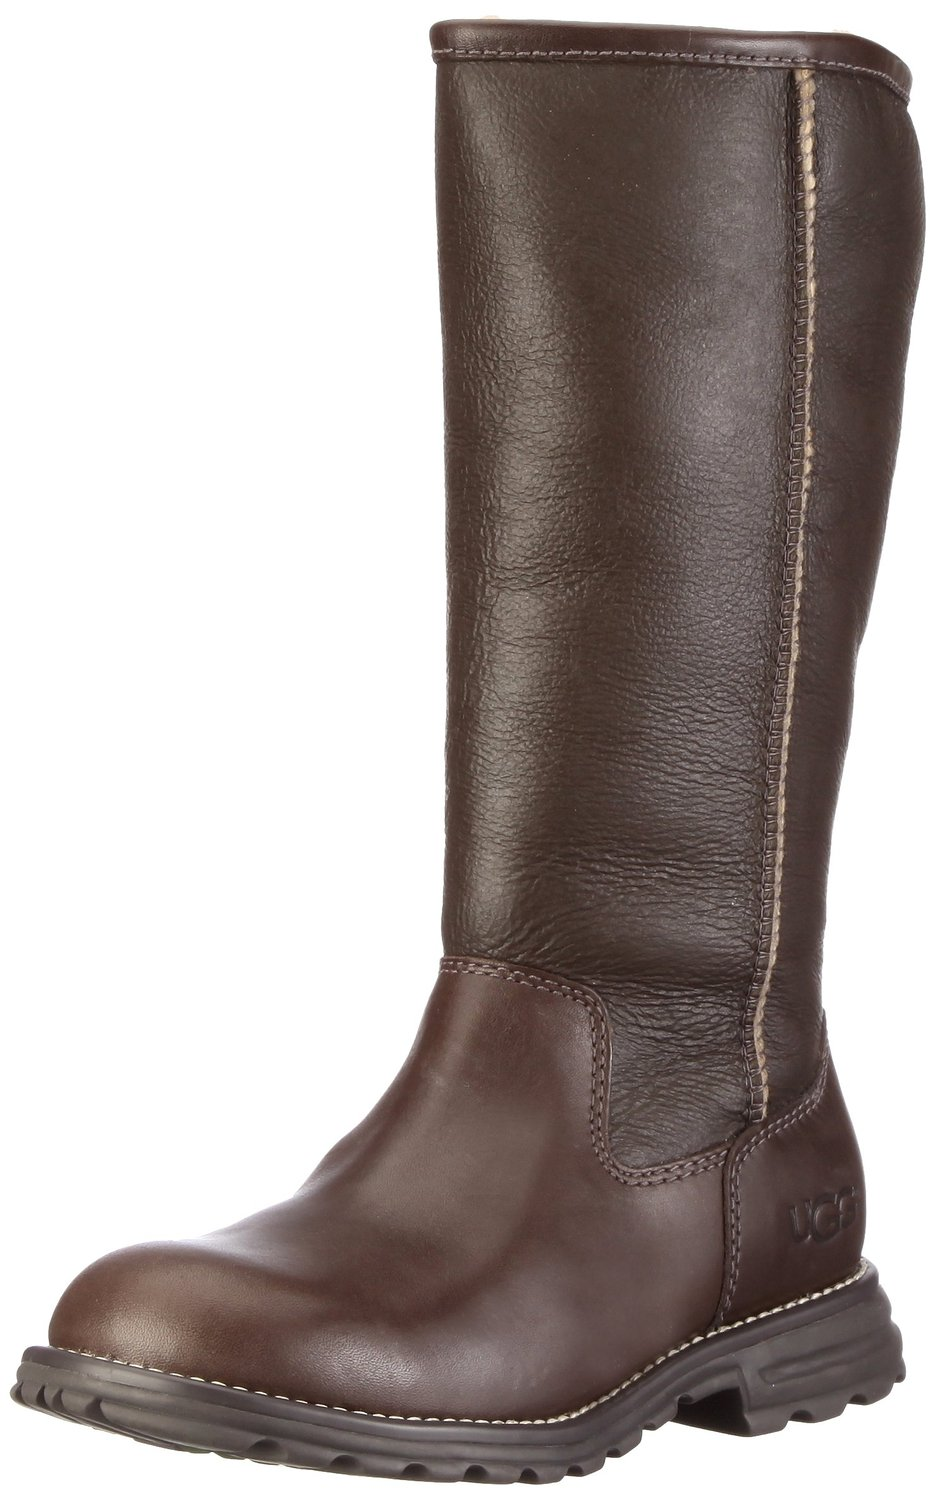 ugg australia brooks knee high long boot. Black Bedroom Furniture Sets. Home Design Ideas